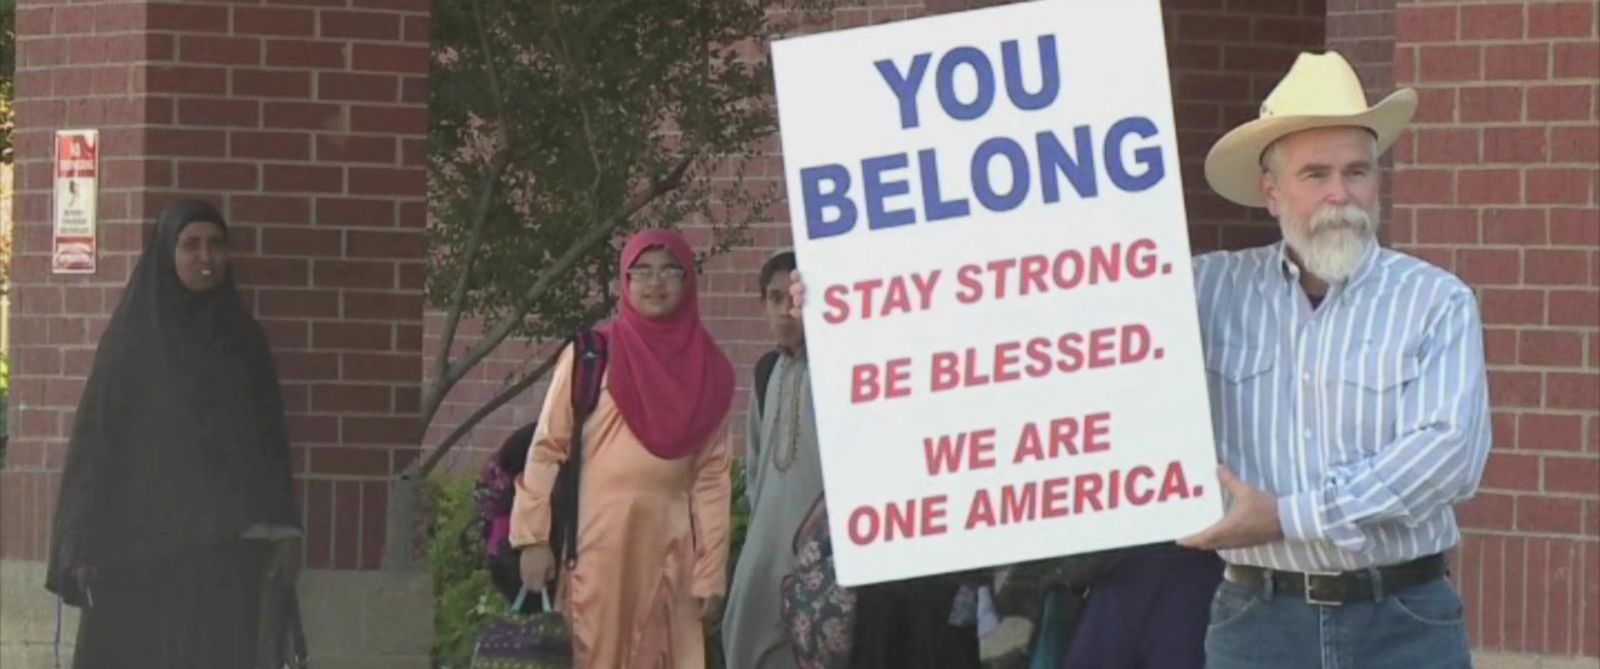 """PHOTO: Justin Normand held a sign that read, """"You belong: Stay strong. Be blessed. We are one America"""" outside the Islamic Center of Irving in Texas in a show of solidarity with the Muslim community."""